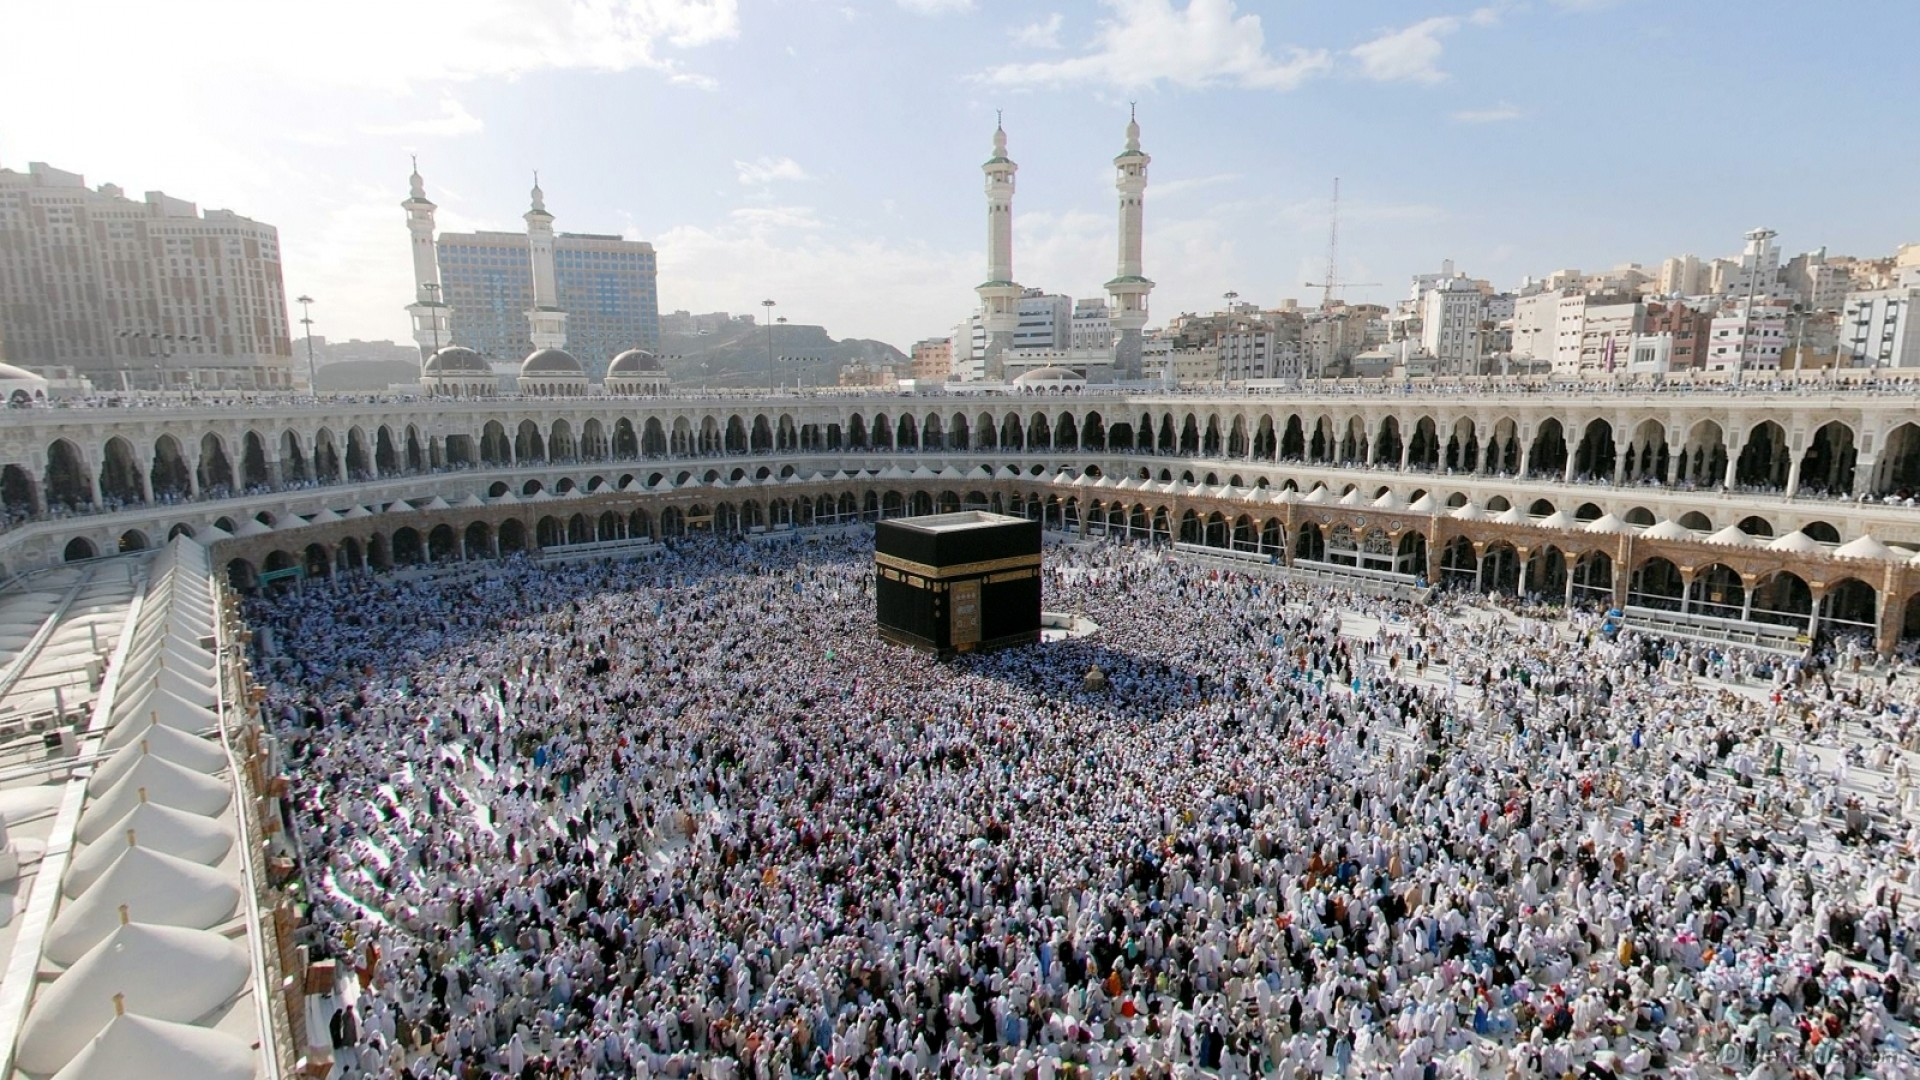 Res: 1920x1080, kaaba mecca mosque wonder